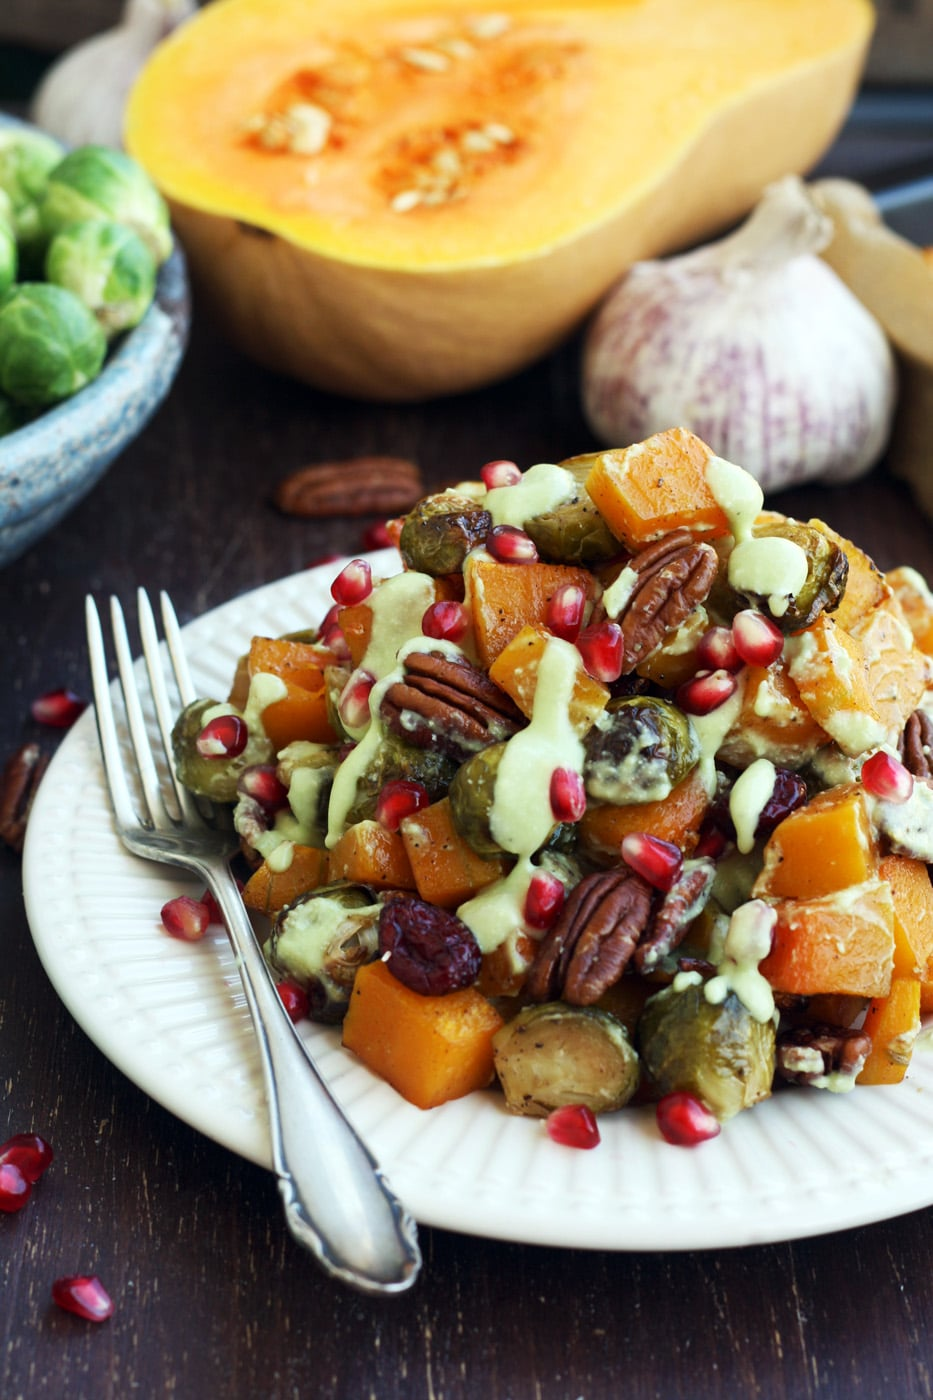 Roasted Brussels Sprouts with Butternut Squash Served on a Plate with Pomegranate Seeds on the Table